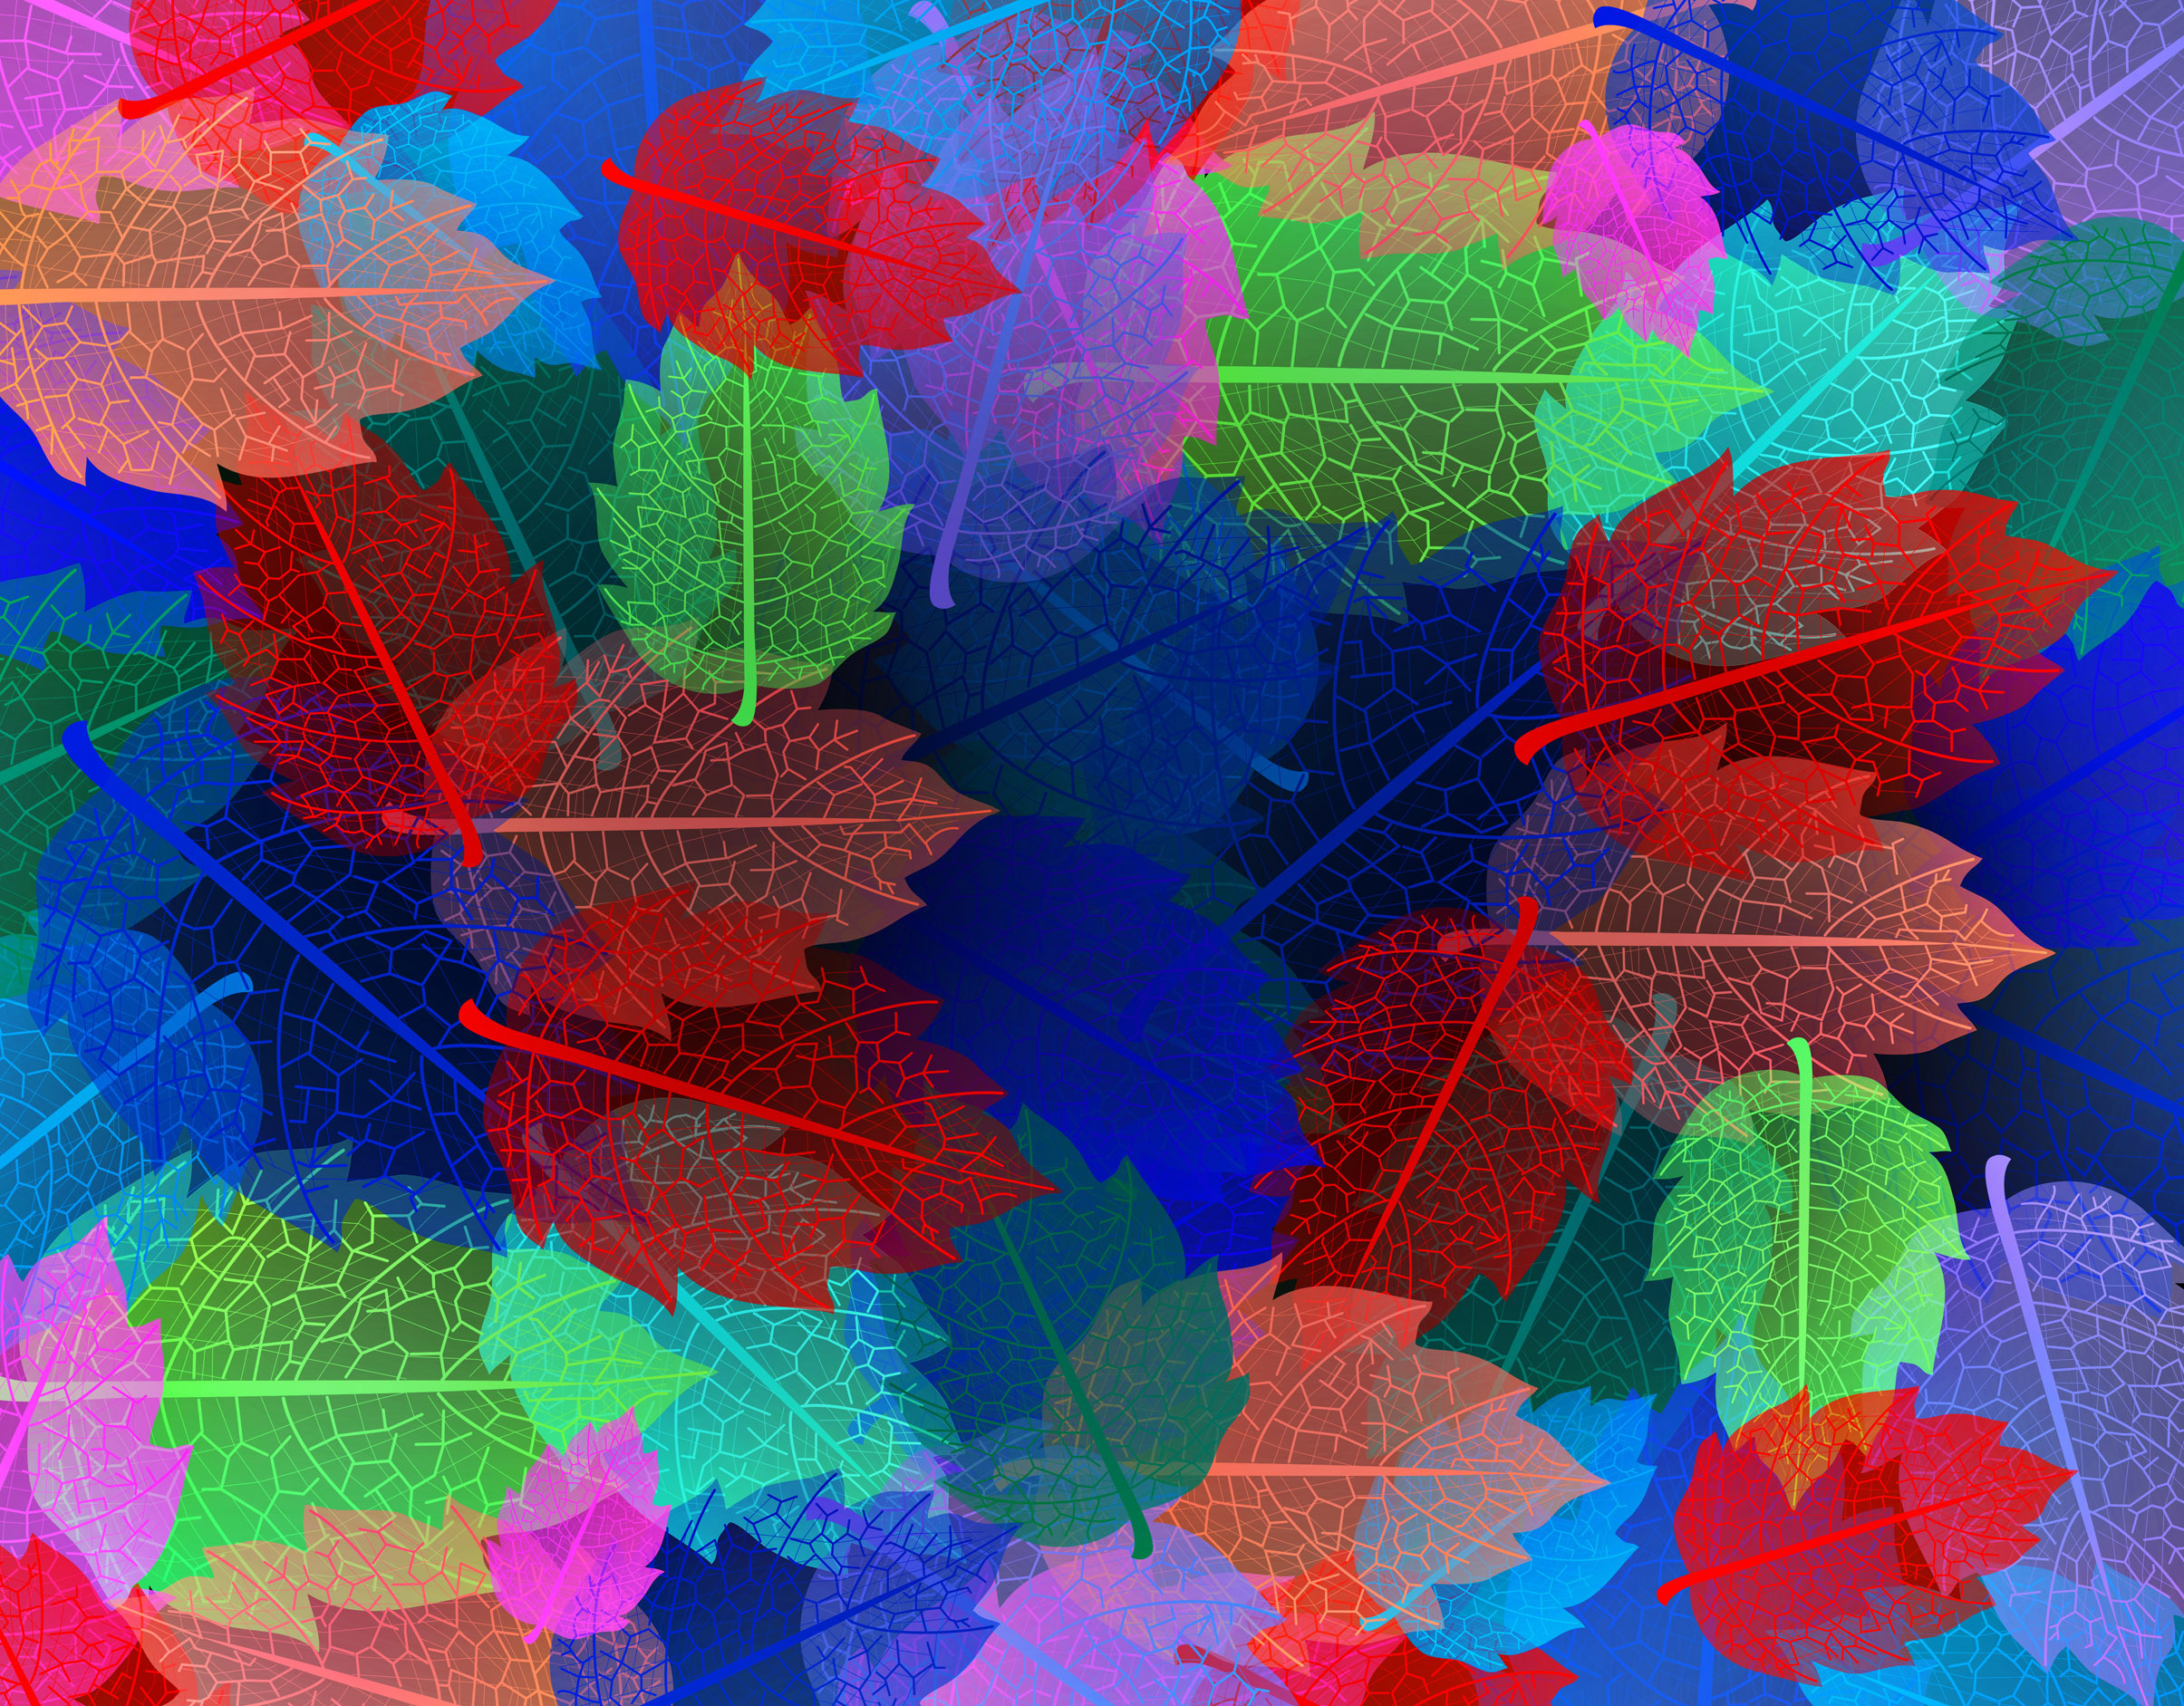 Colorful autumn leaves pattern, Abstract, Plant, Seamlessly, Seamless, HQ Photo